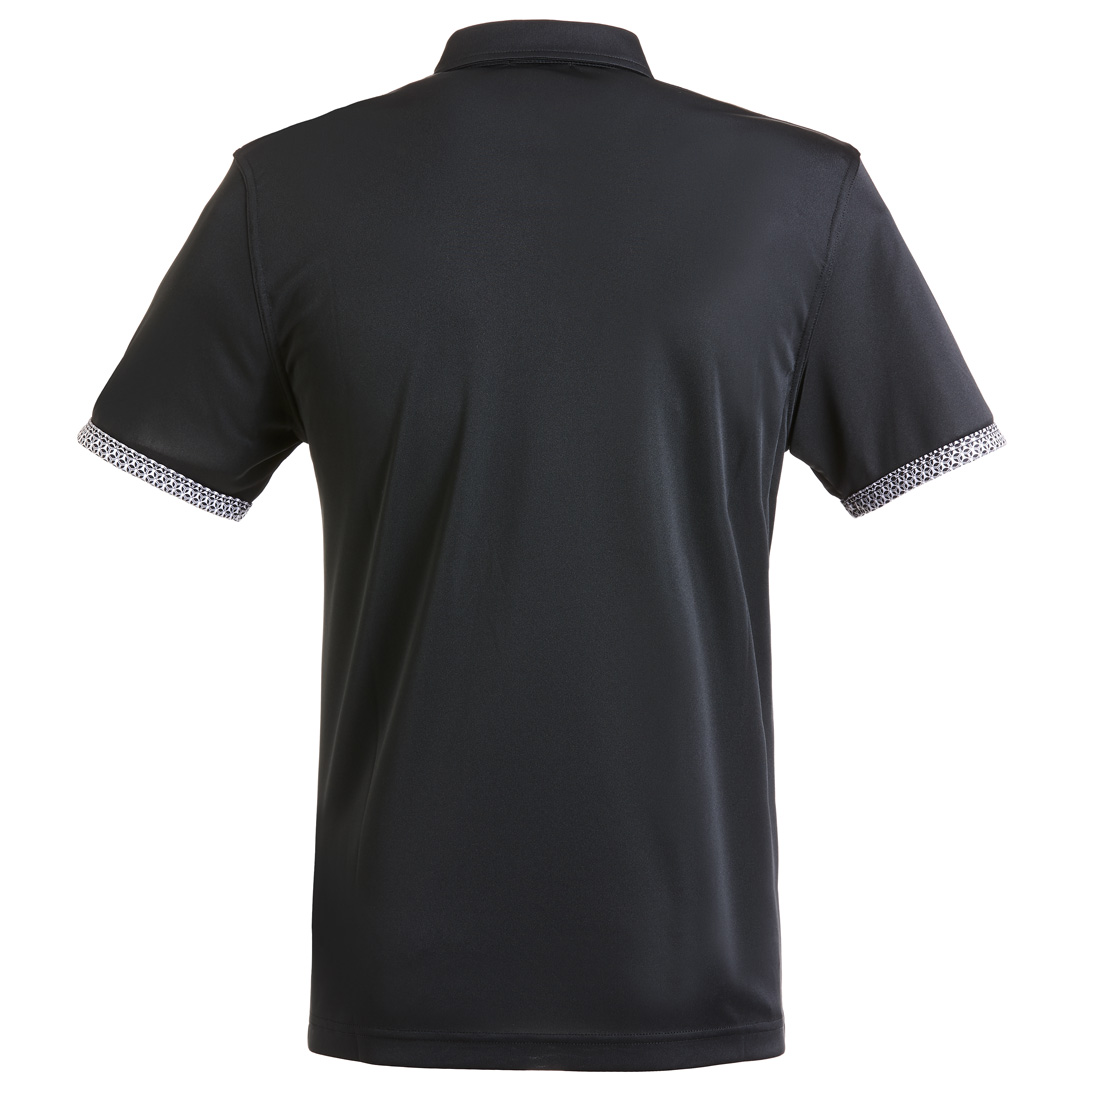 Jersey Jacquard Funktions-Golfpolo Extra Dry